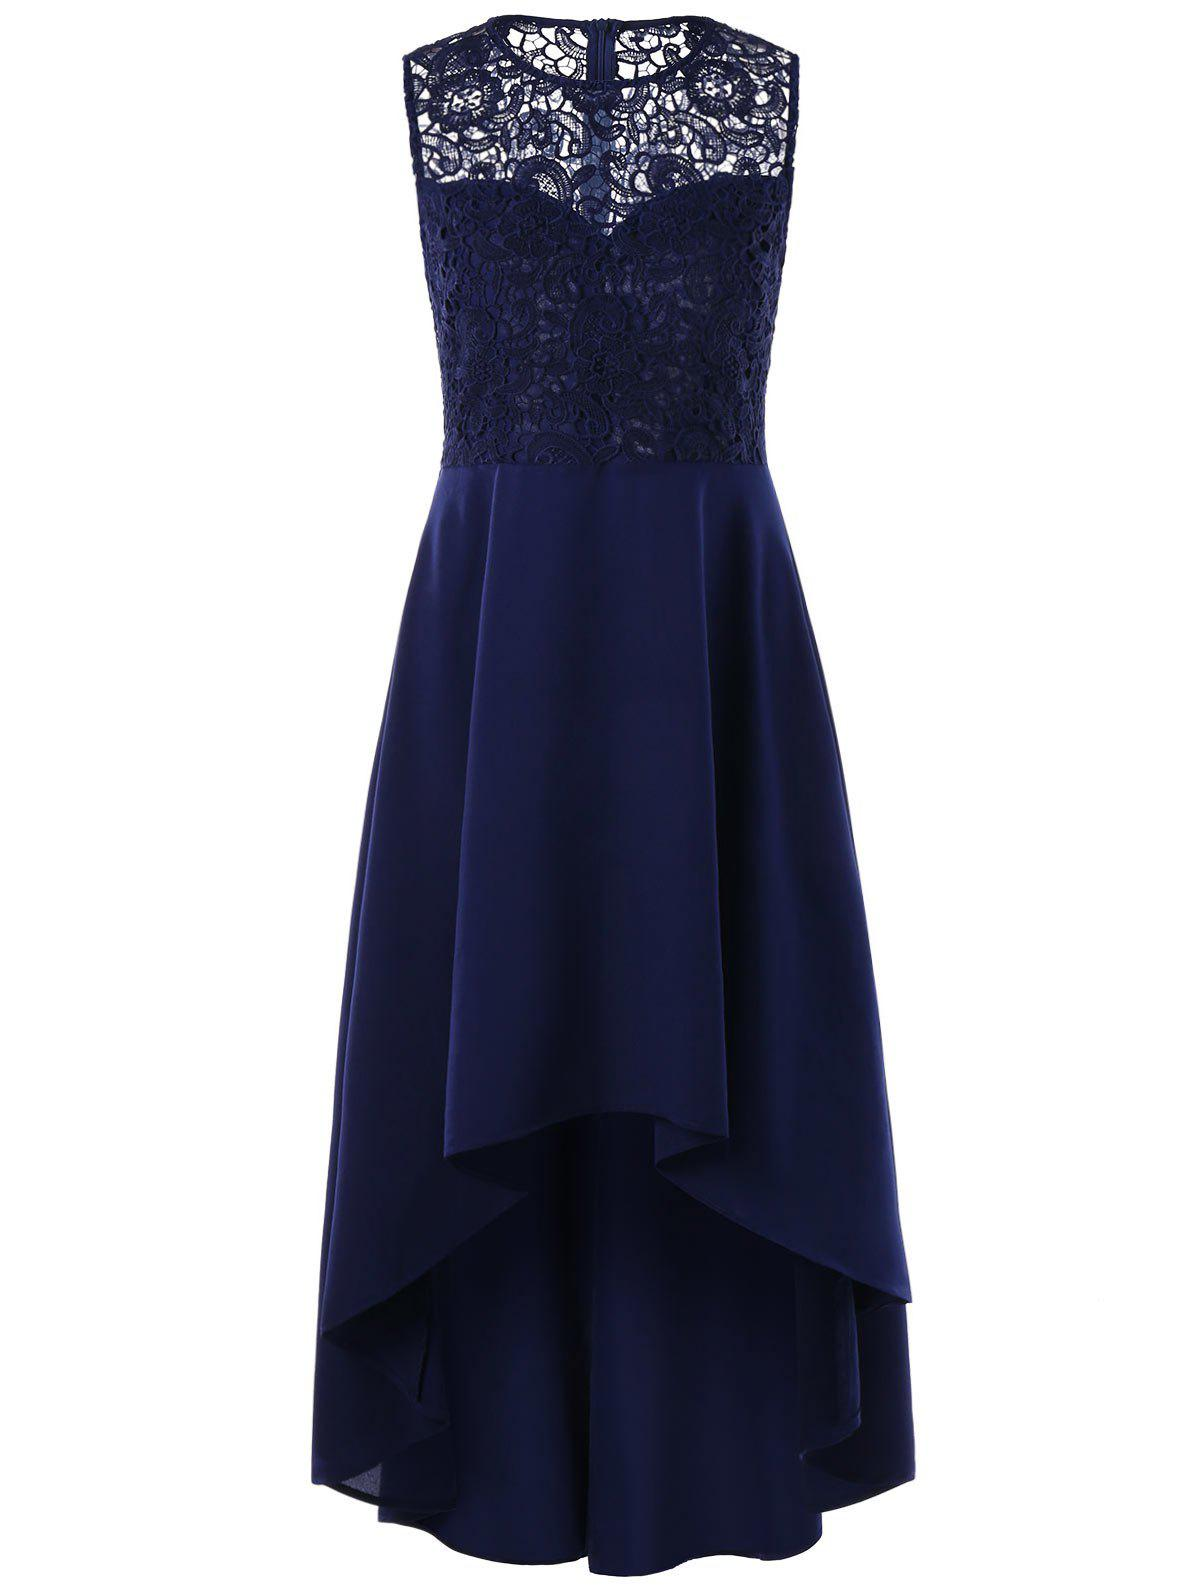 Sleeveless Lace Panel High Low Dress - BLUE 2XL